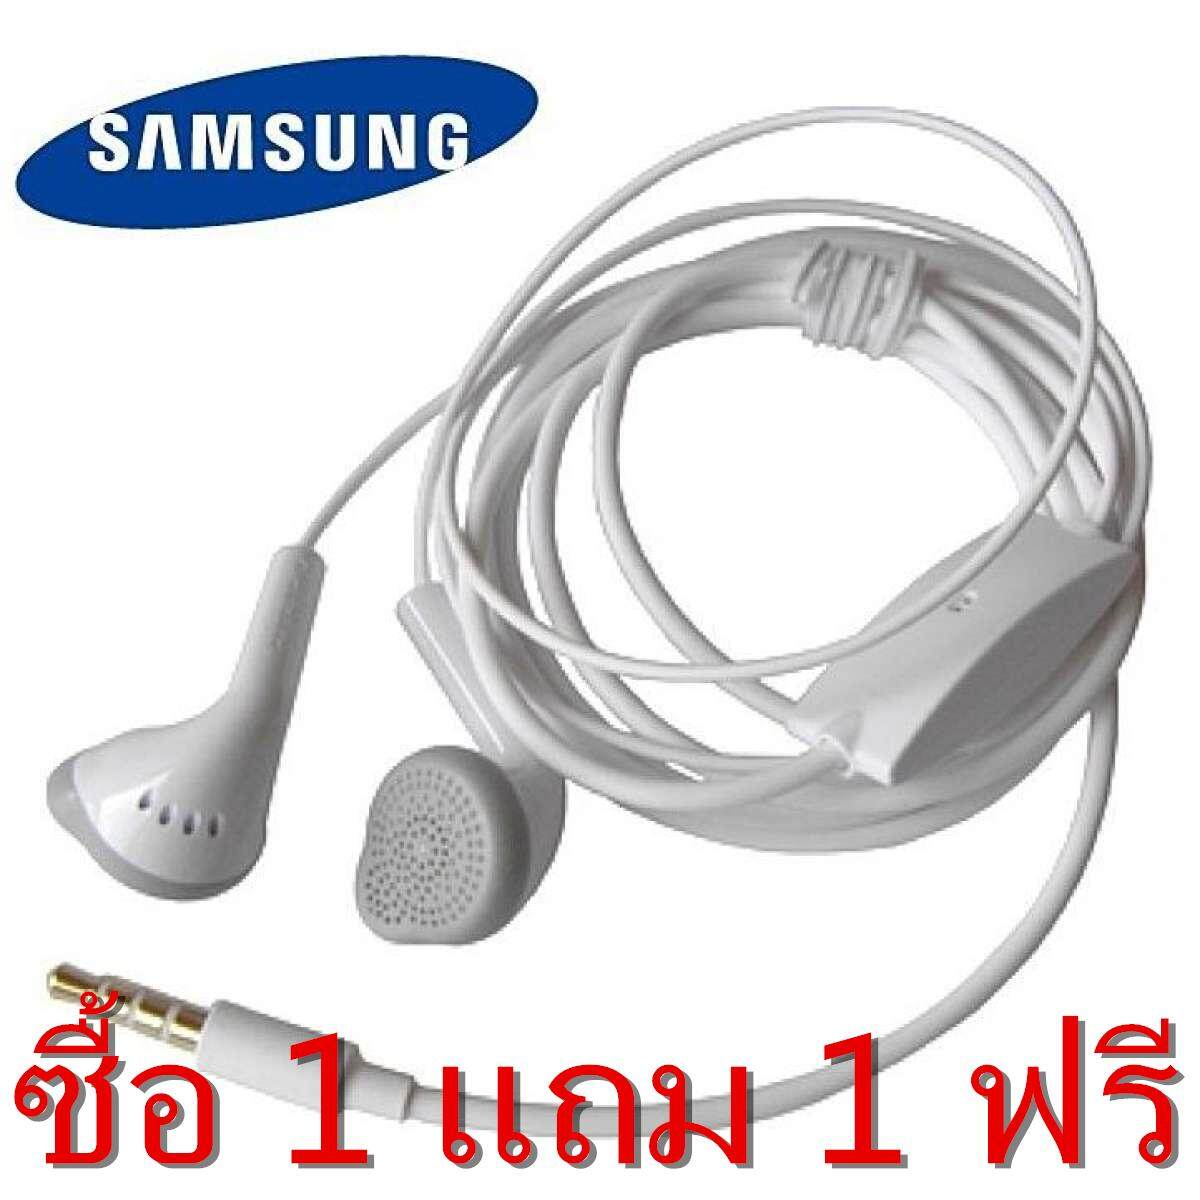 มาใหม่ หูฟัง Rondaful I7 Twins I7S TWS Earbuds Ture Wireless Bluetooth Double Earphones Earpieces Stereo Music Headset For Apple iPhone X 8 8 Plus With Battery Compartment มีคูปองส่วนลด